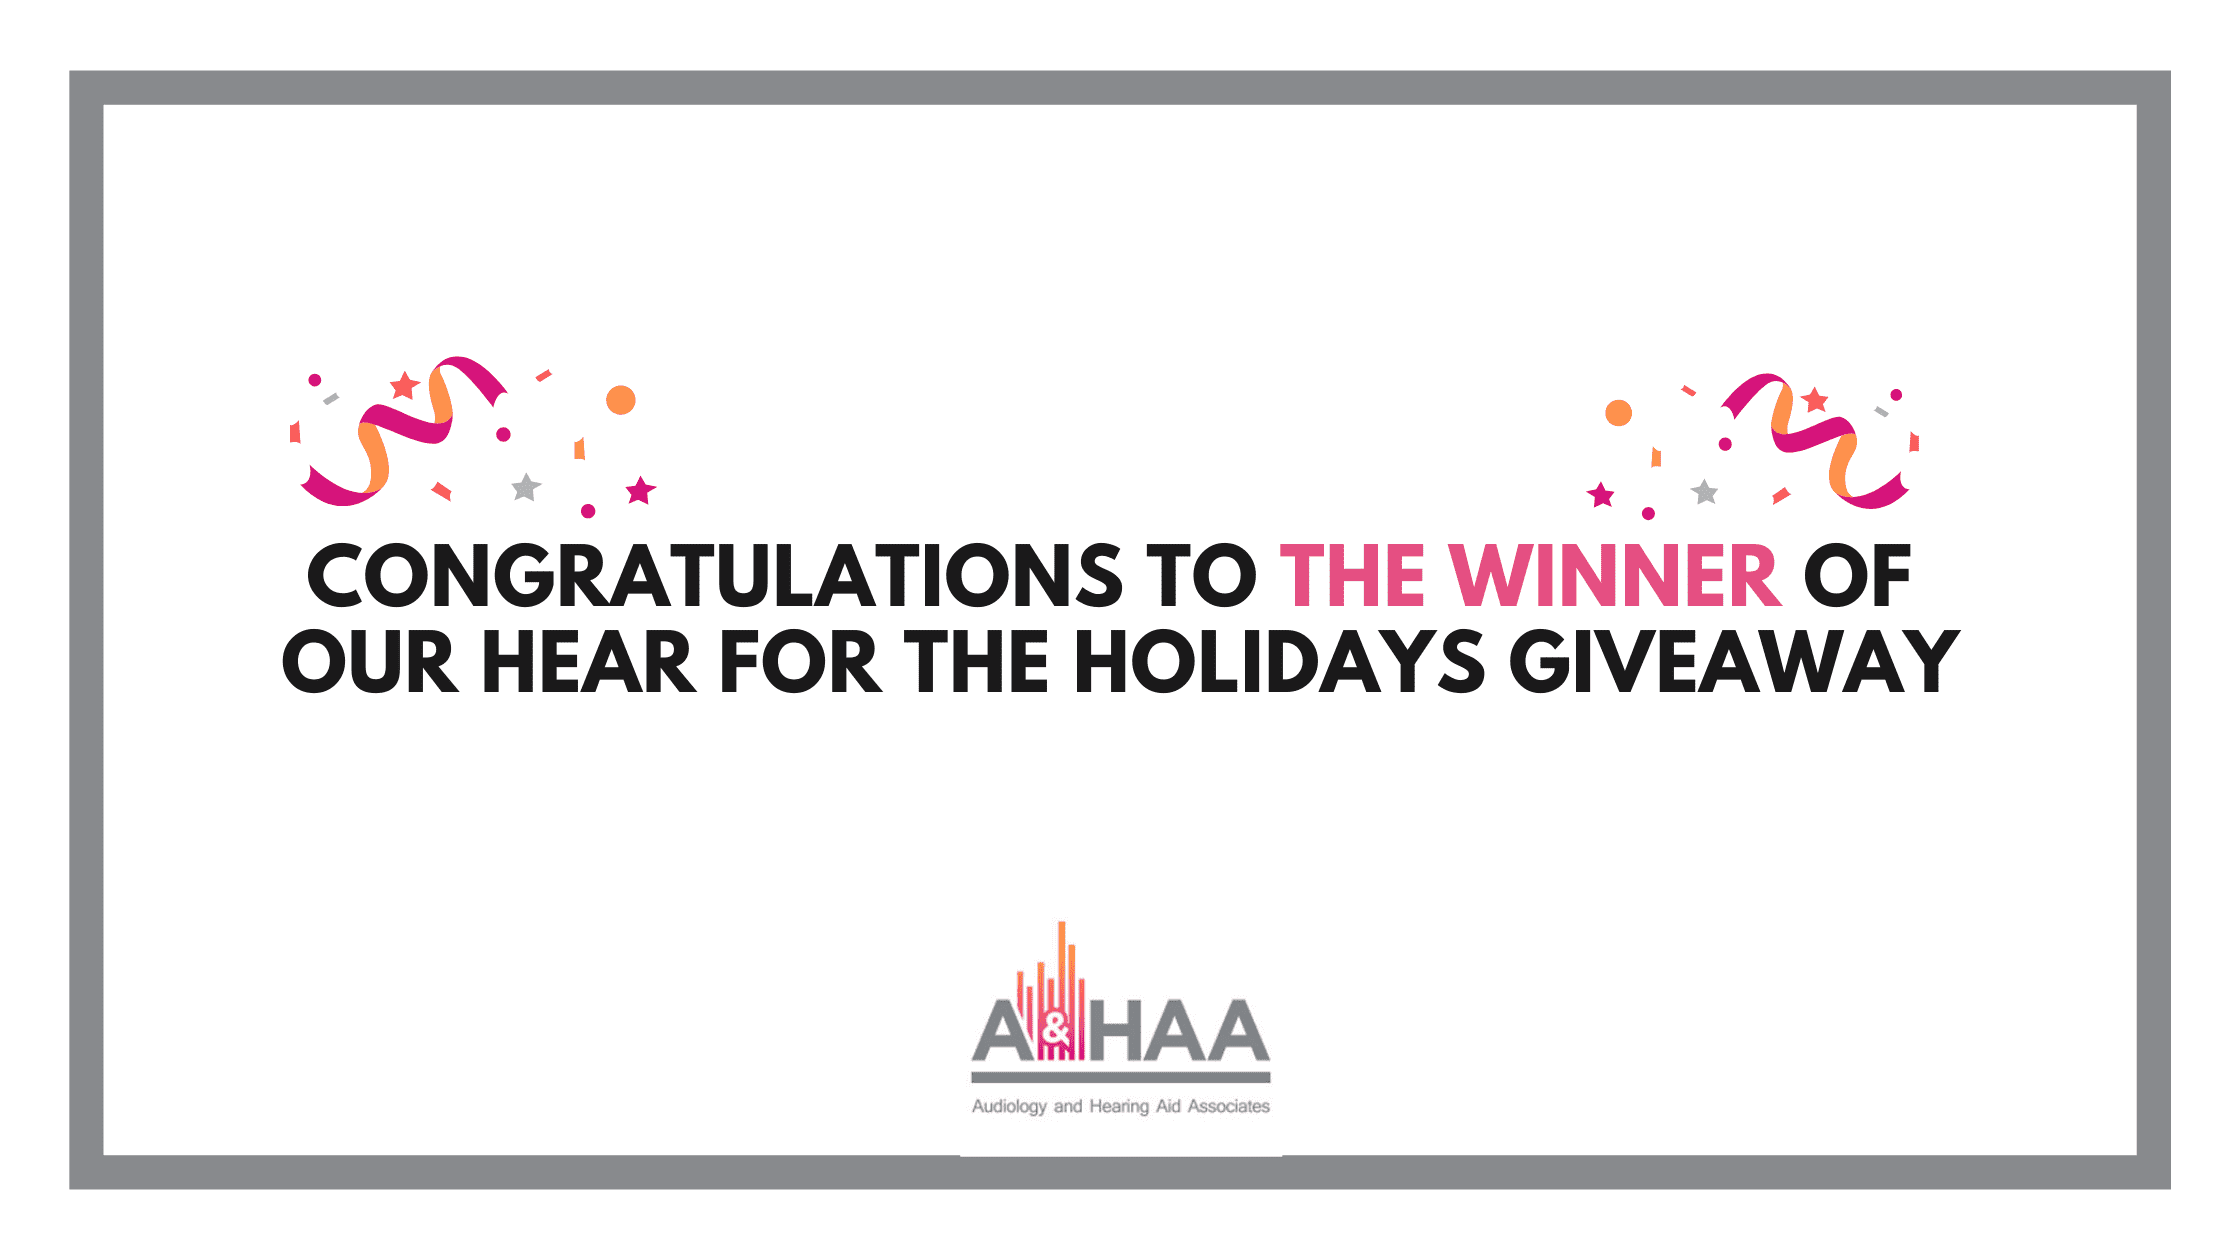 Congratulations-to-the-winner-of-our-hear-for-the-holidays-giveaway